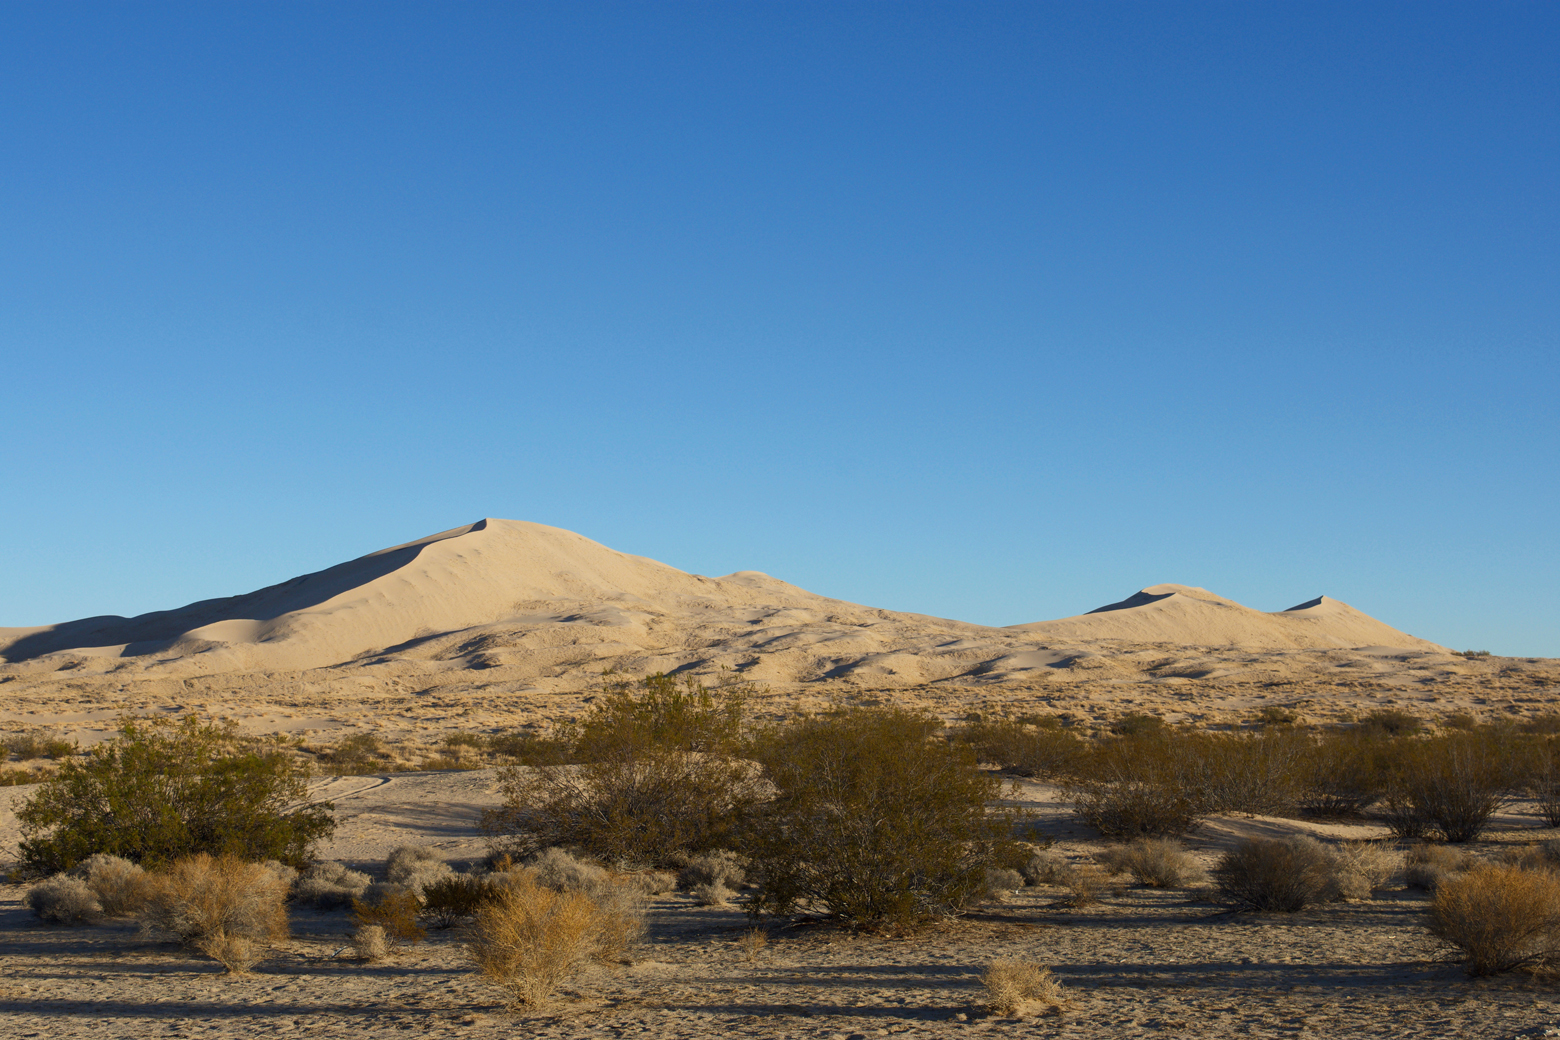 View of the three tall peaks of Kelso Dunes from our campsite